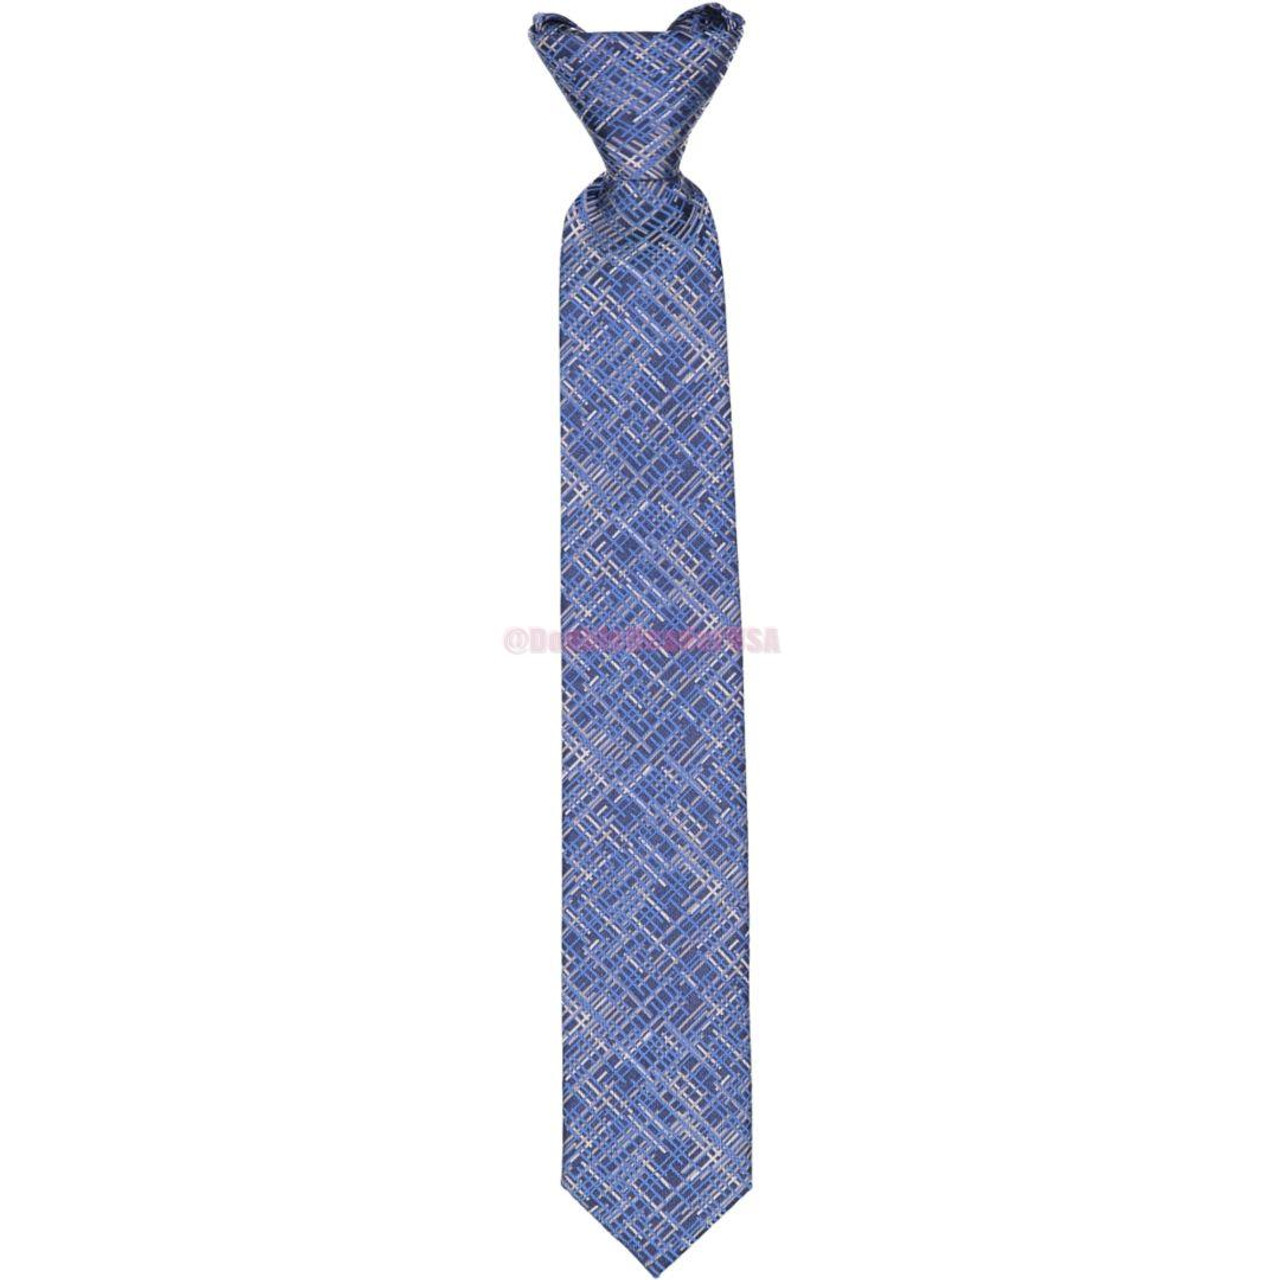 West End Necktie - WE3210